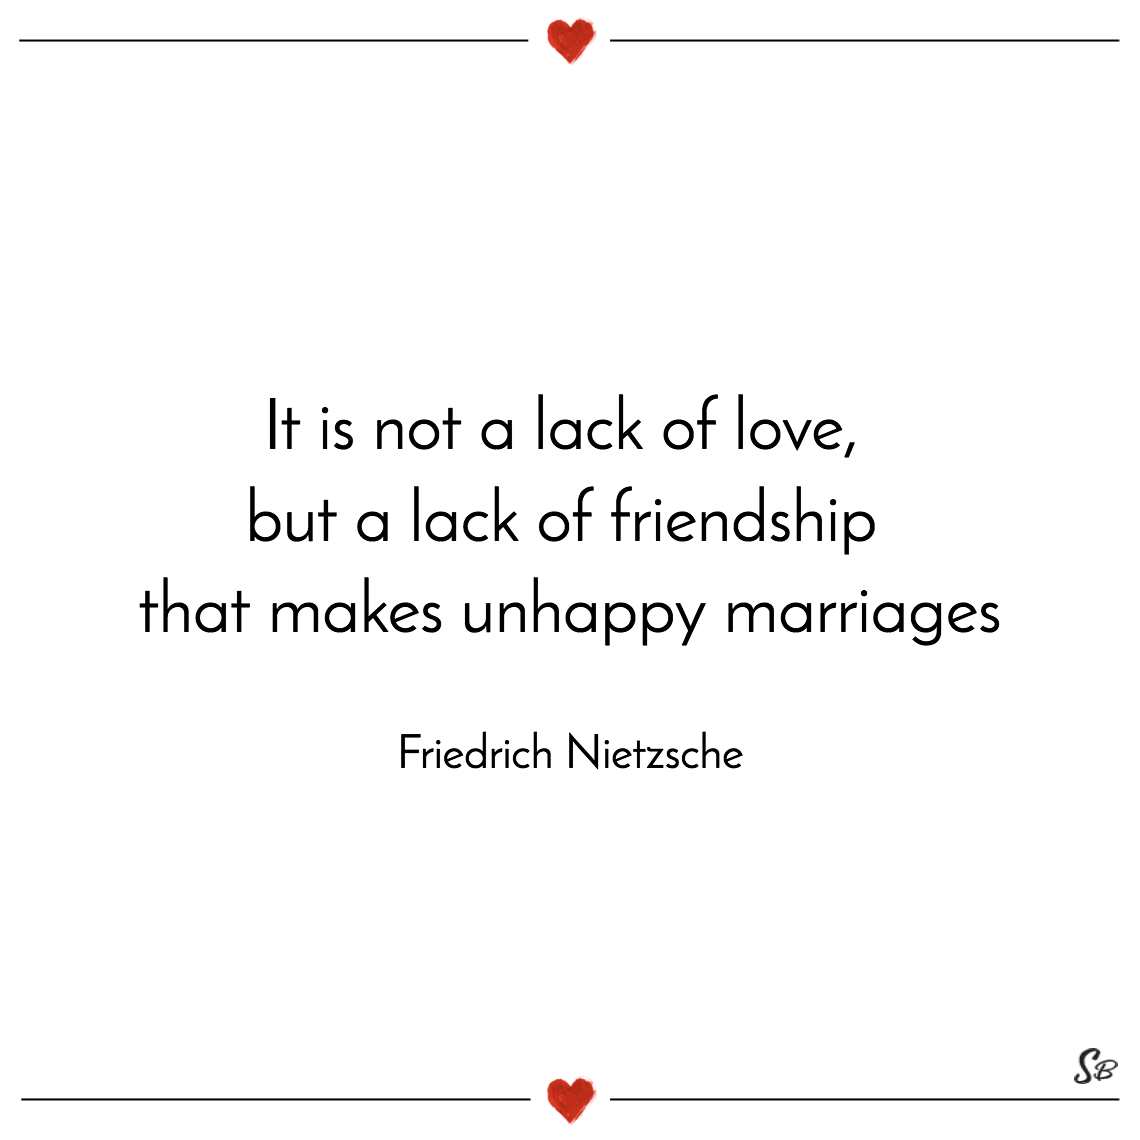 Quotes About Love And Friendship Cool 31 Beautiful Marriage Quotes About Love And Friendship  Spirit Button